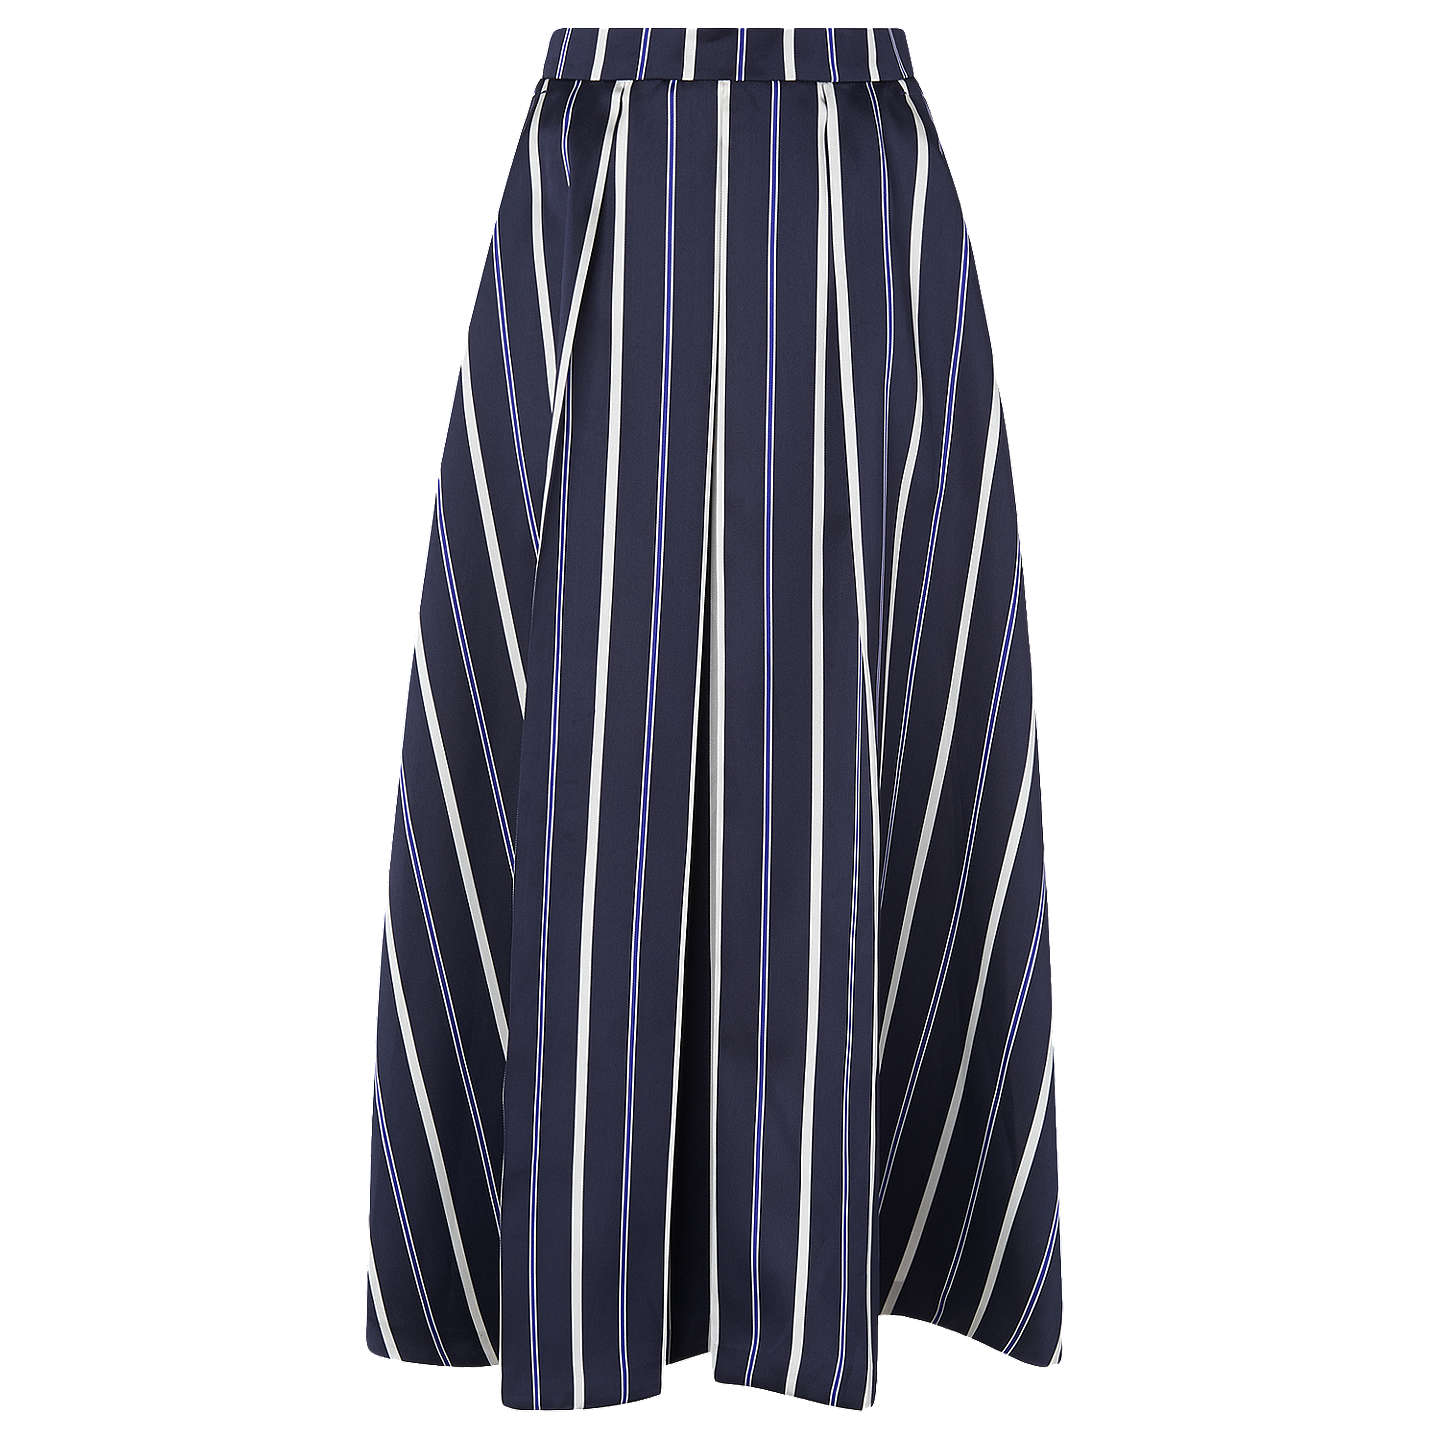 BuyL.K.Bennett Natalee Skirt, Blue/Multi, 12 Online at johnlewis.com